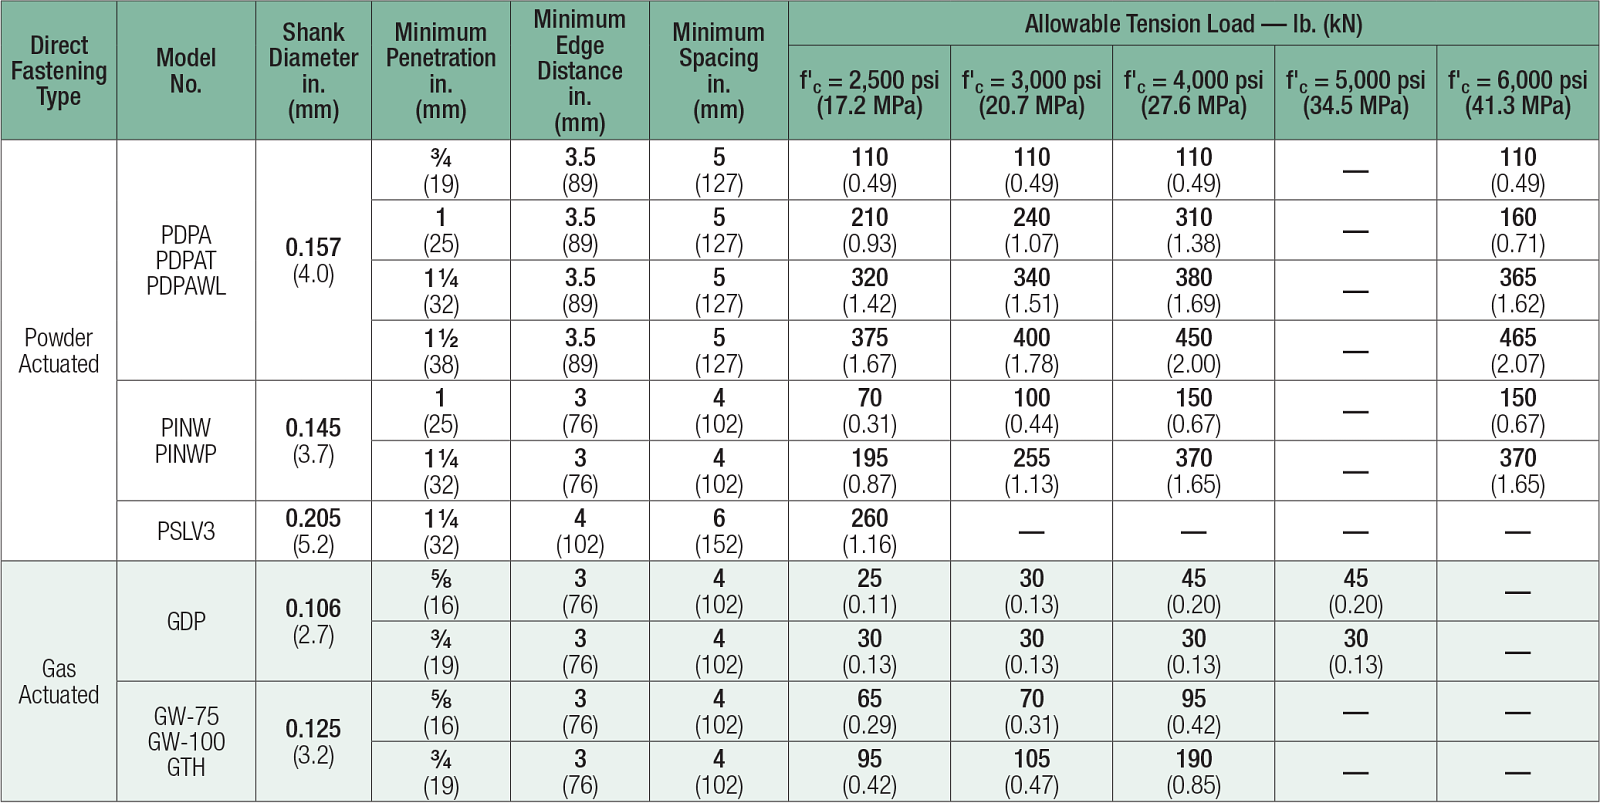 Table: Powder-Actuated and Gas-Actuated Fasteners — Allowable Tension Loads in Normal-Weight Concrete